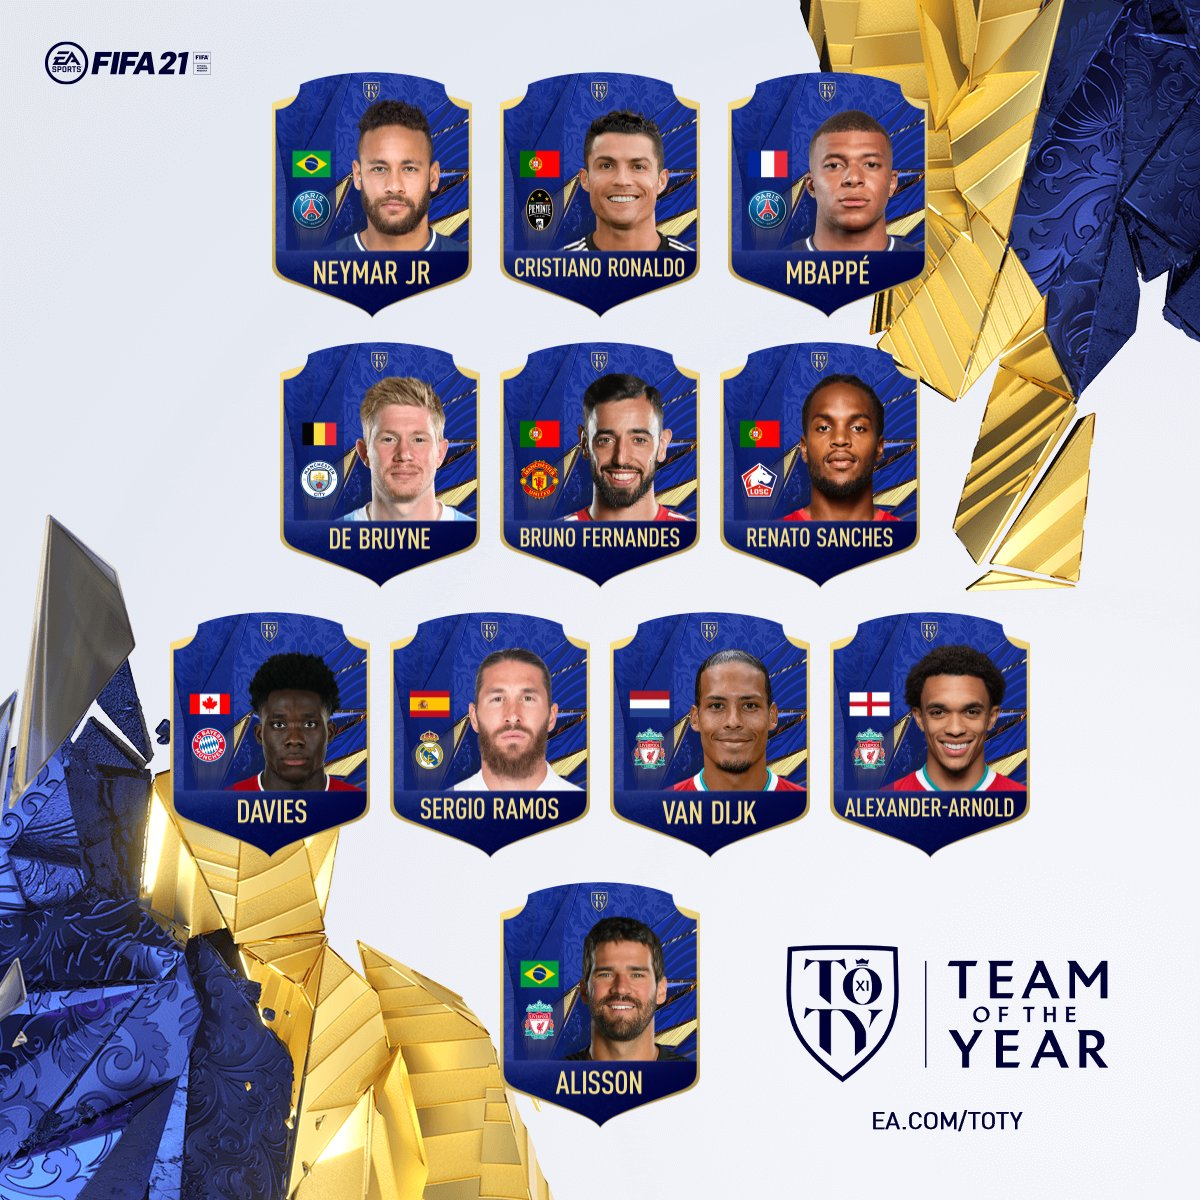 Replying to @Huge_Gorilla: My #TOTY vote!